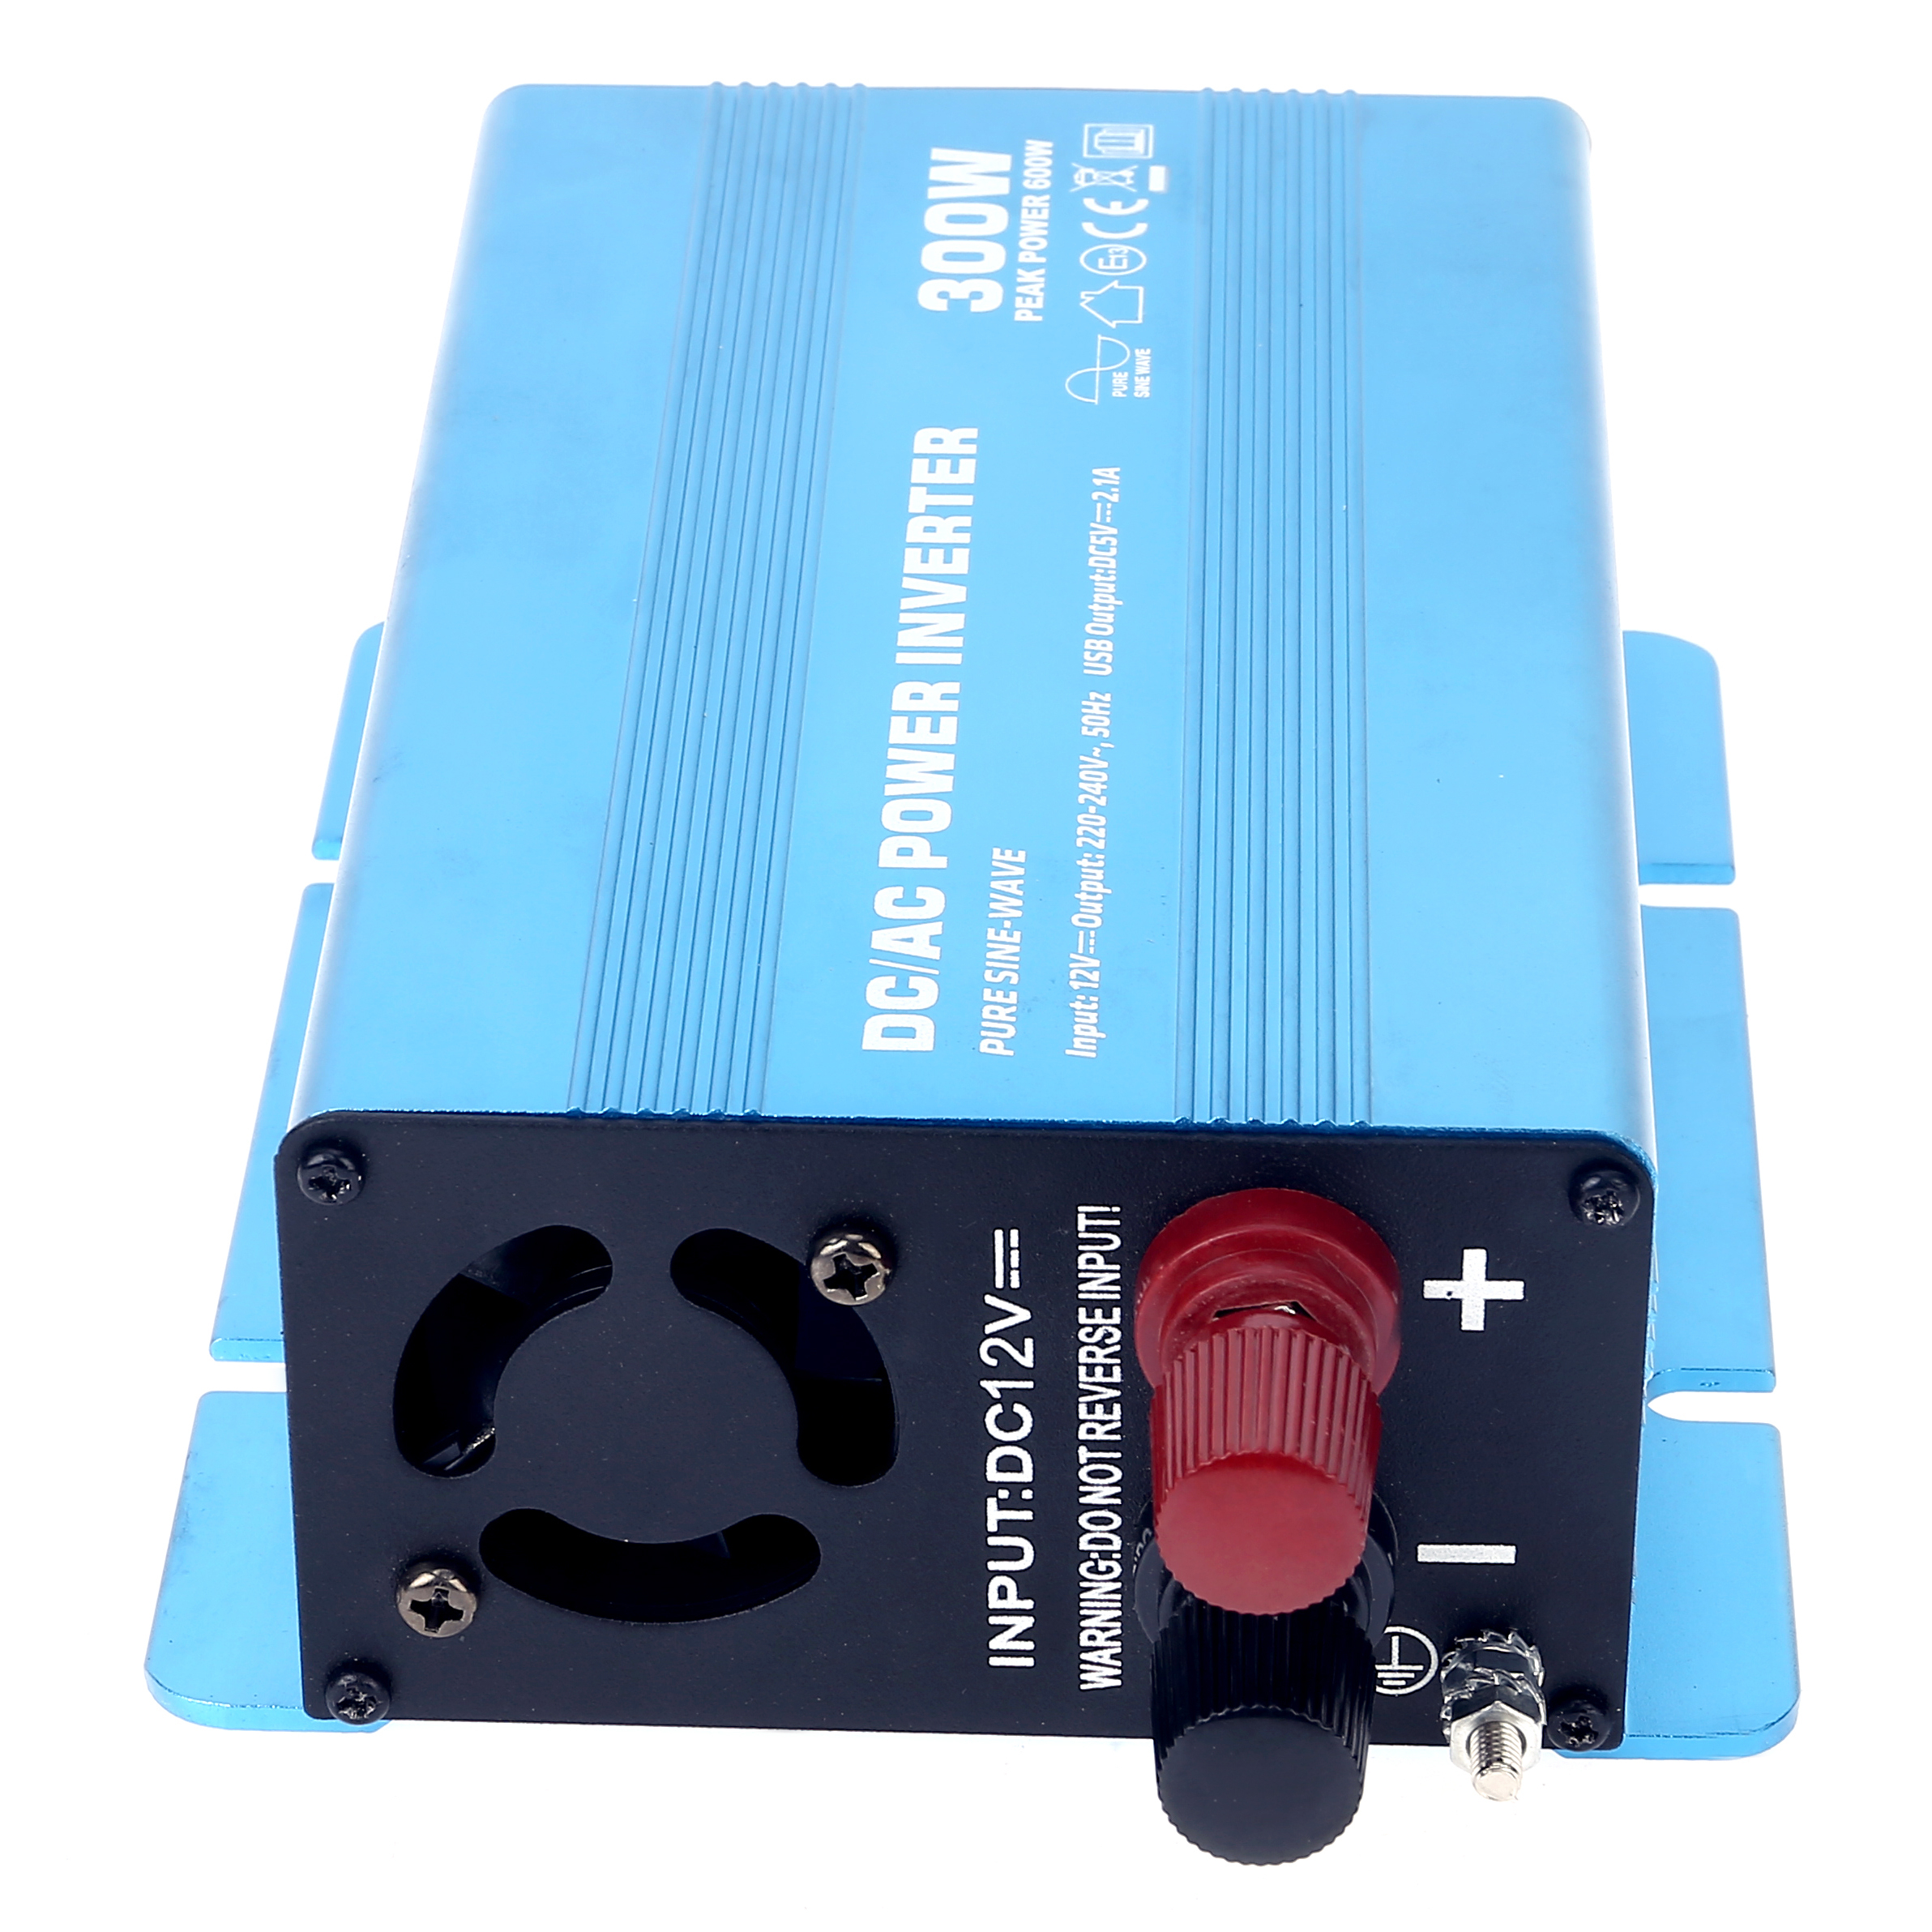 Theta 300w Pure Sine Wave Inverter 300 Watts Pwm Controlled Circuit With Output